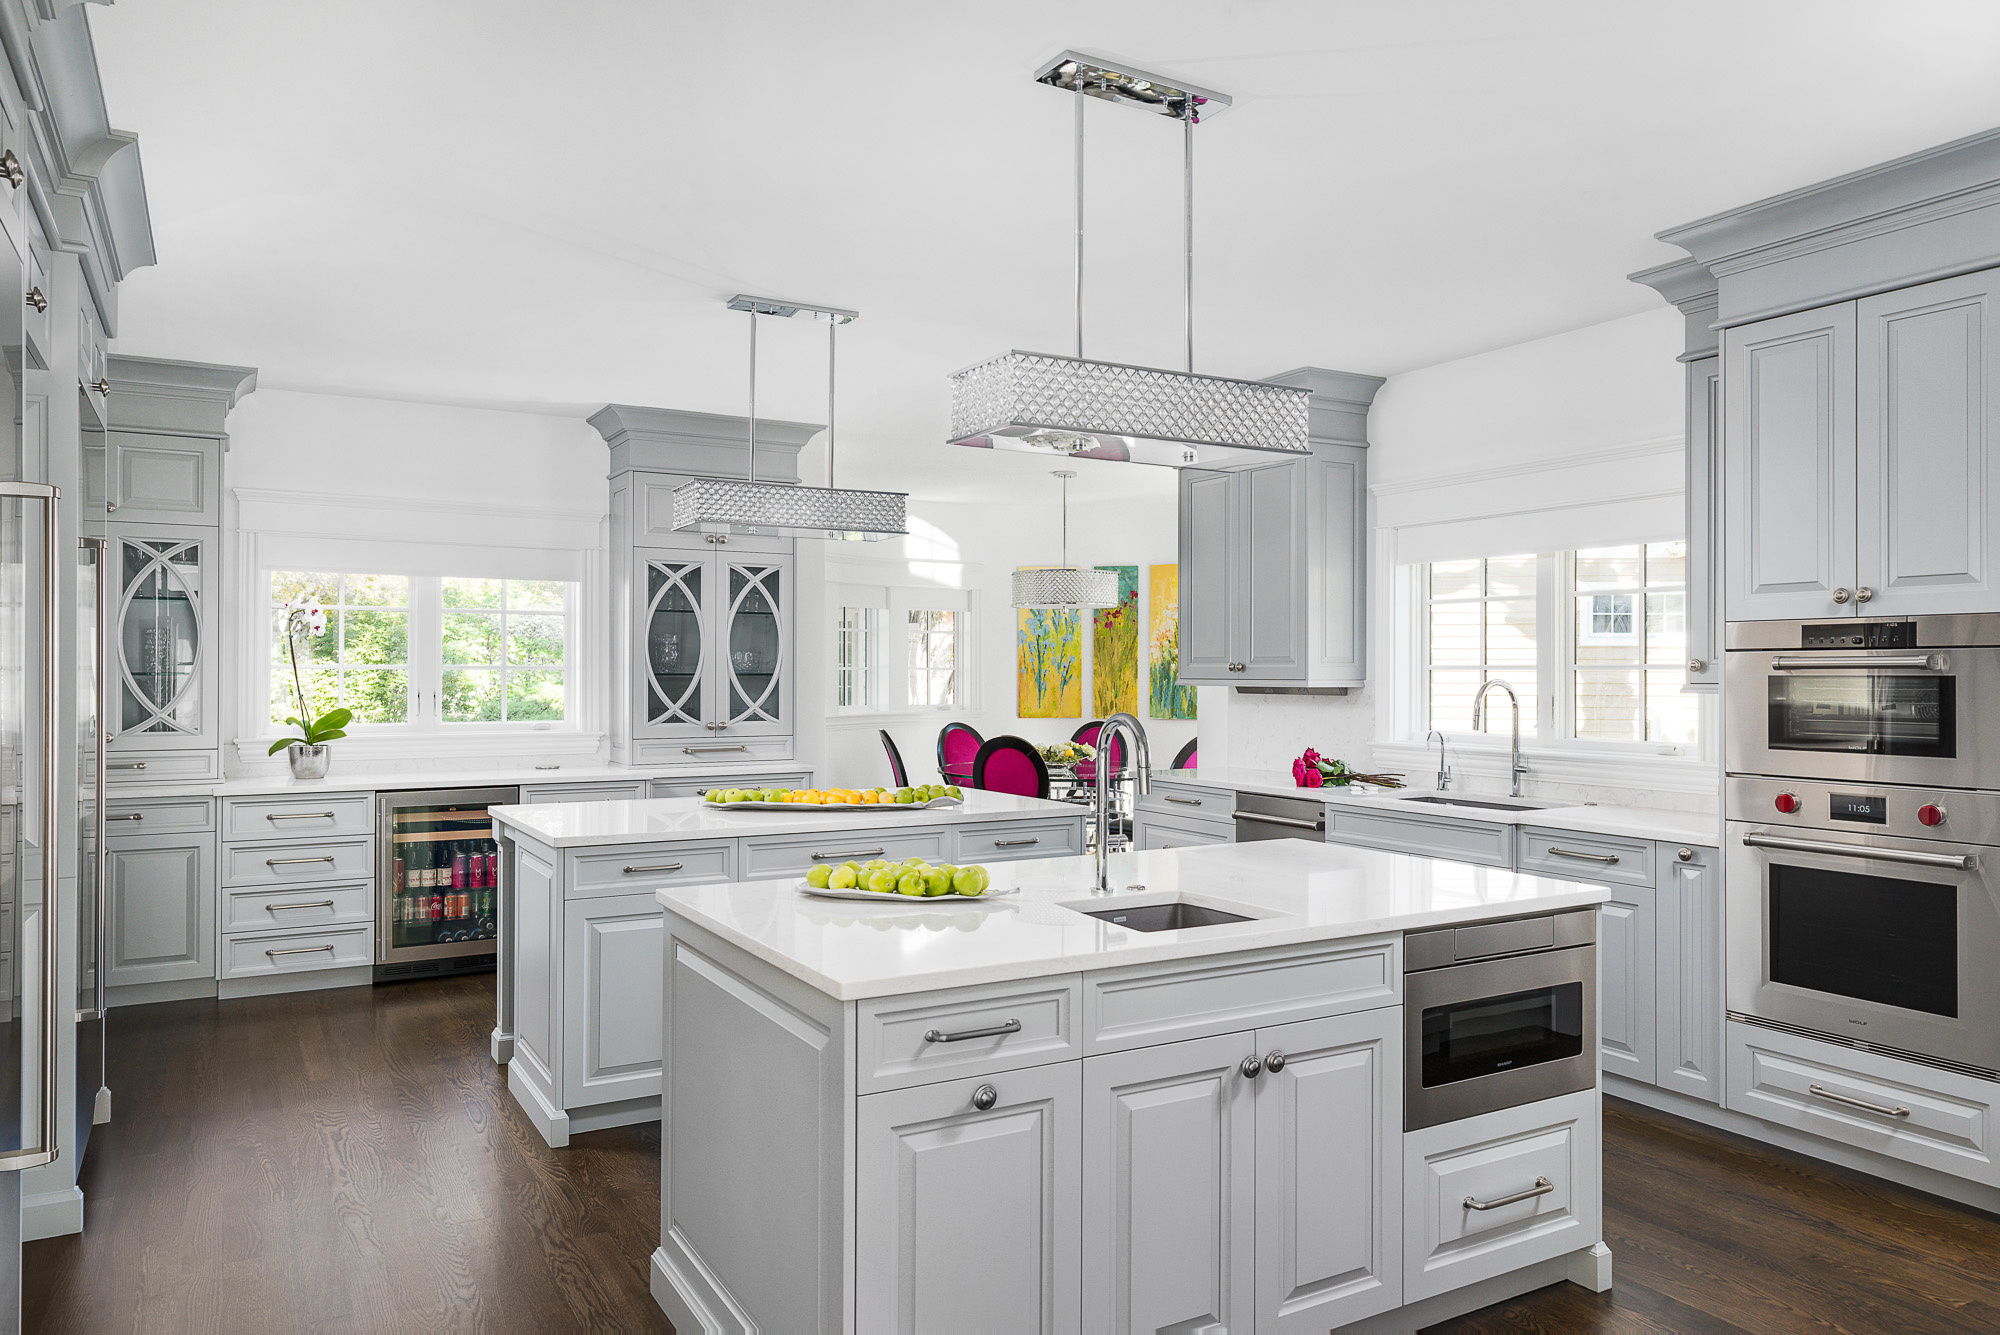 Luxury kitchen with dual islands, vegetable prep sink, white European cabinetry, custom mullion doors, M series wall oven, steamer, and microwave.